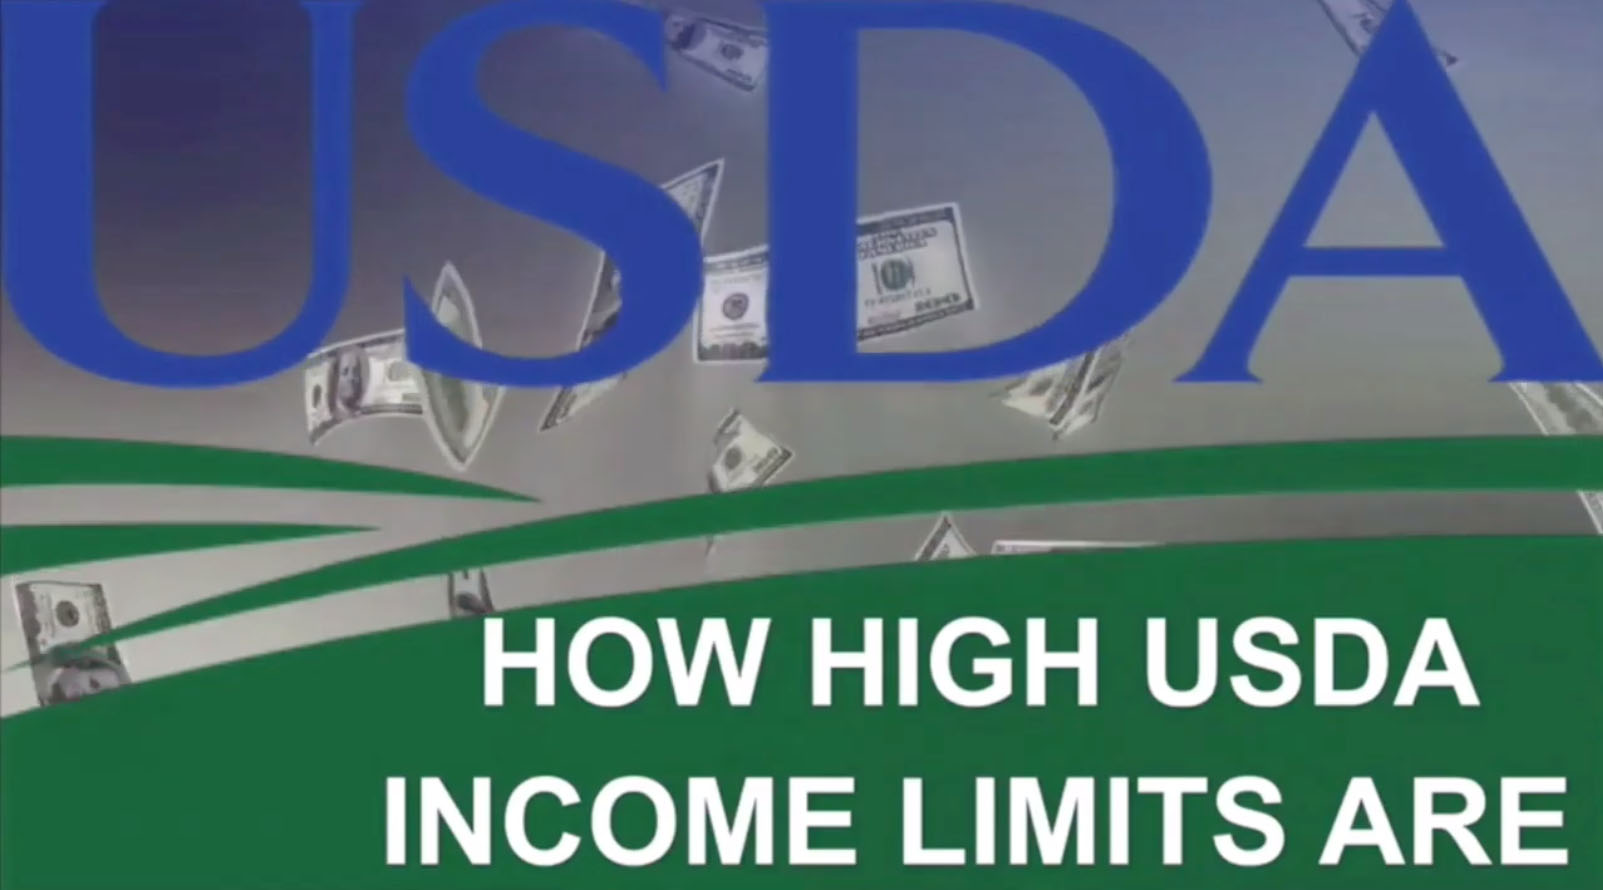 How high are current USDA Loan Income Limits?